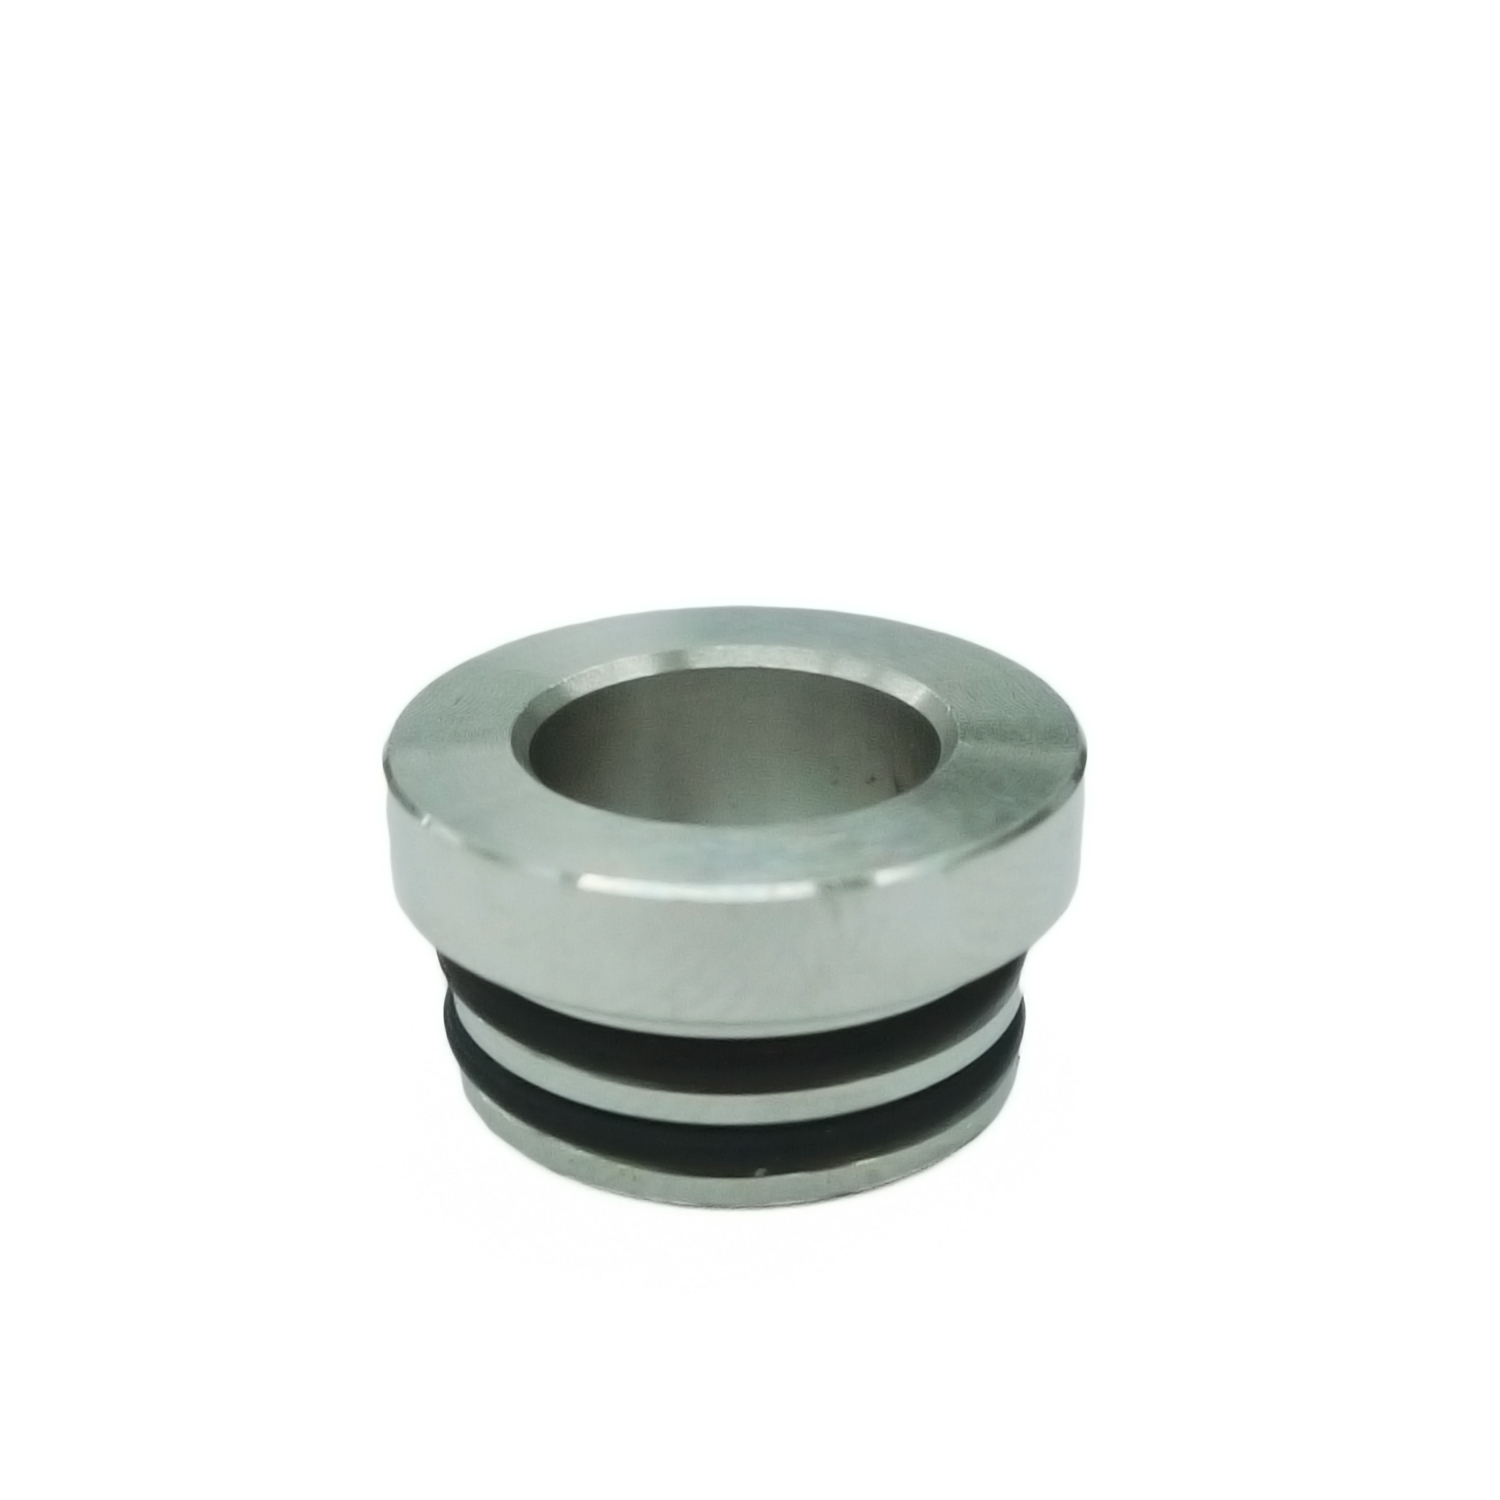 Adapter - Drip Tip von 801 zu 510 in steel